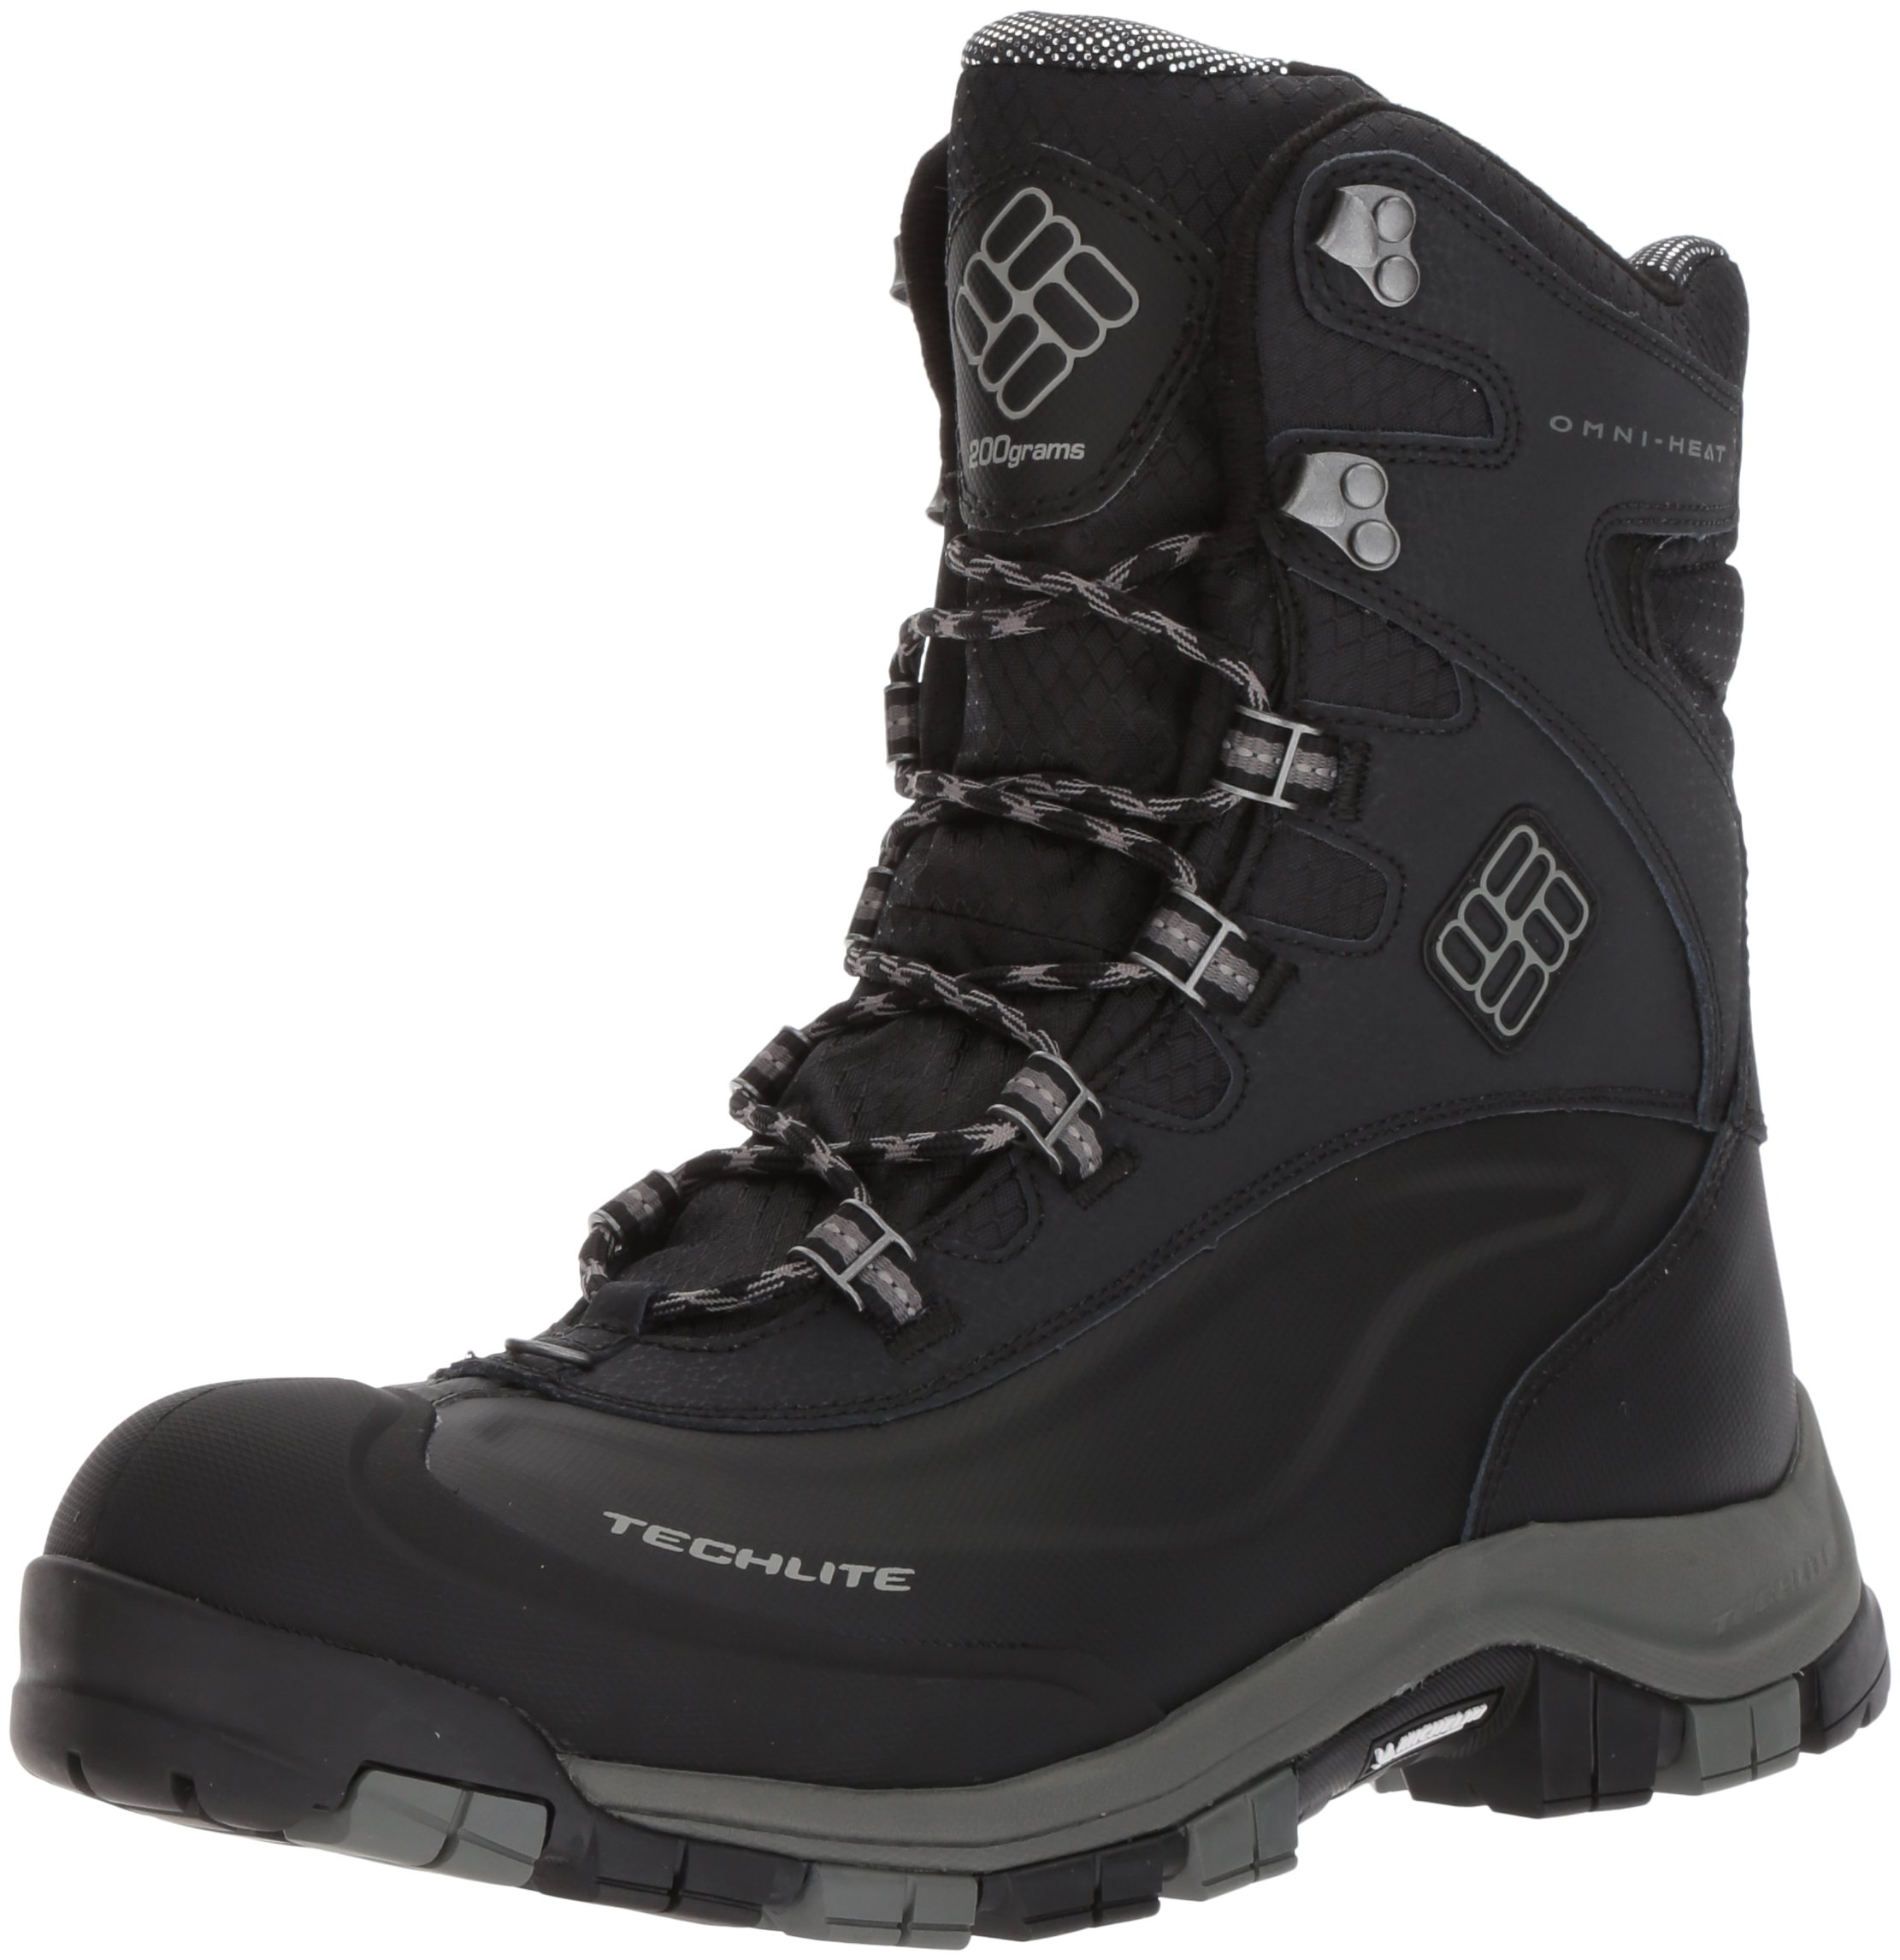 Columbia Men's Bugaboot Plus Omni-Heat Michelin Snow Boot, Black, Boulder, 7 D US by Columbia